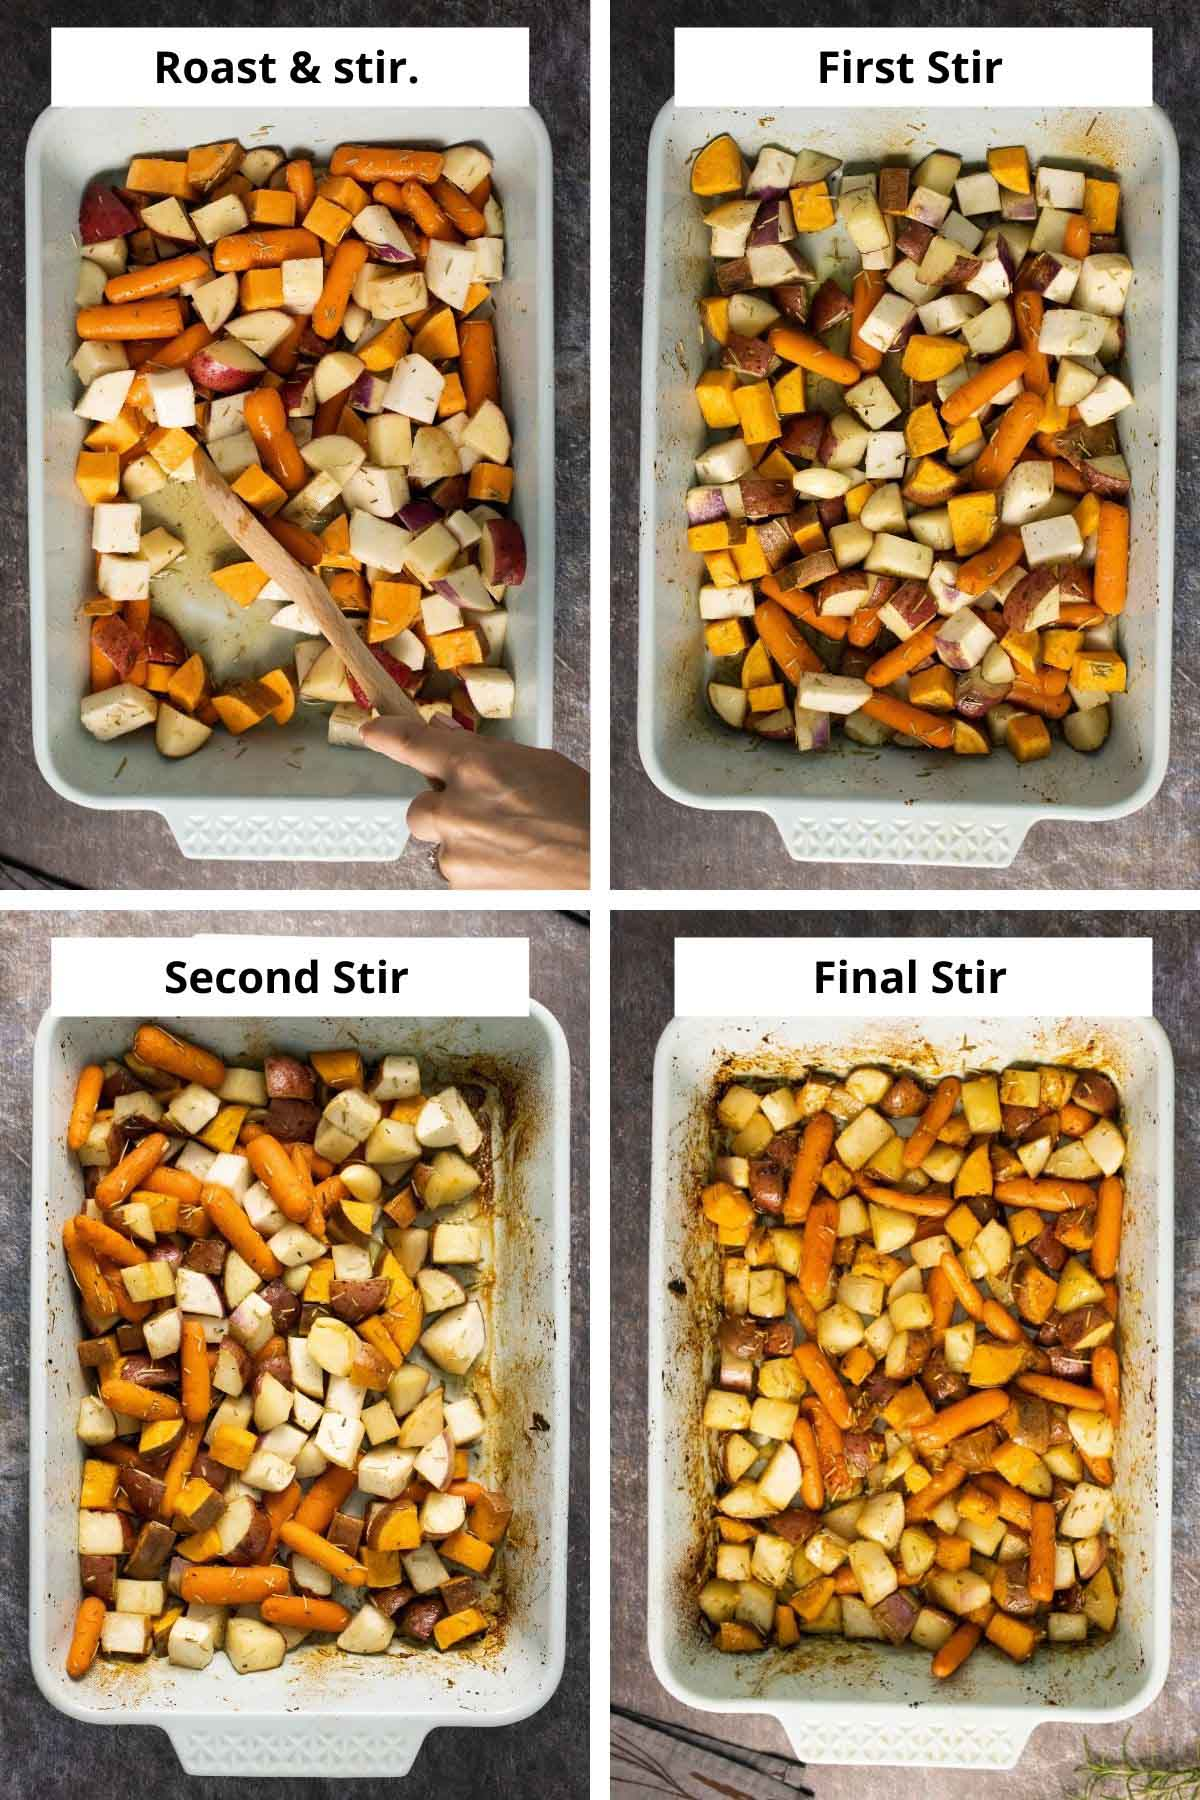 image collage showing the root vegetables in a baking pan at different stages of baking, so you can see the progress